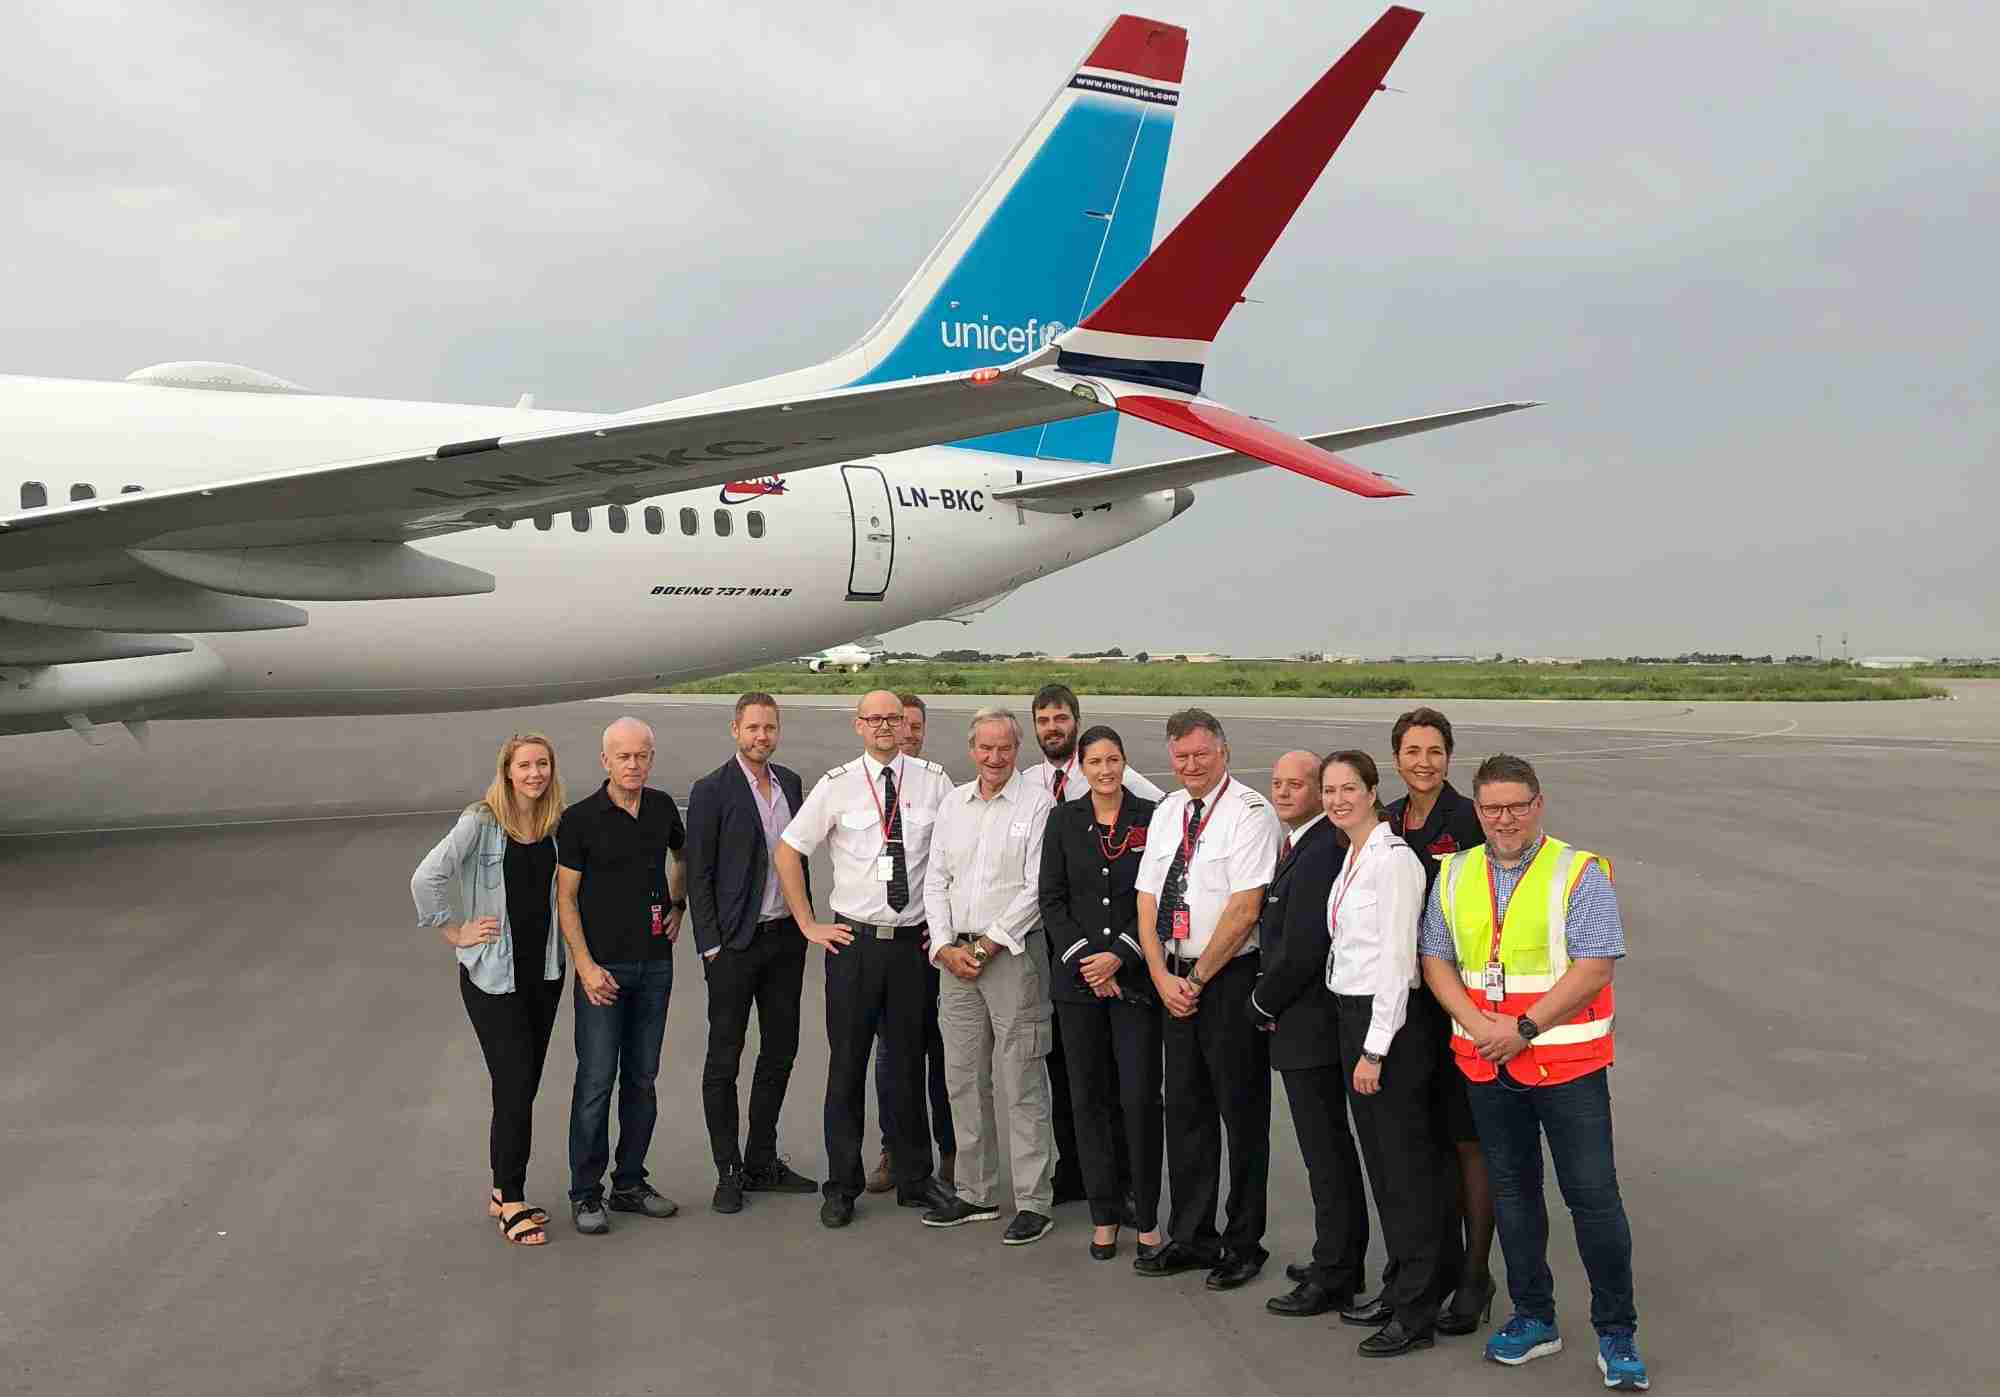 The Norwegian Air Fill-a-Plane team in Chad. Photo by Zach Honig.